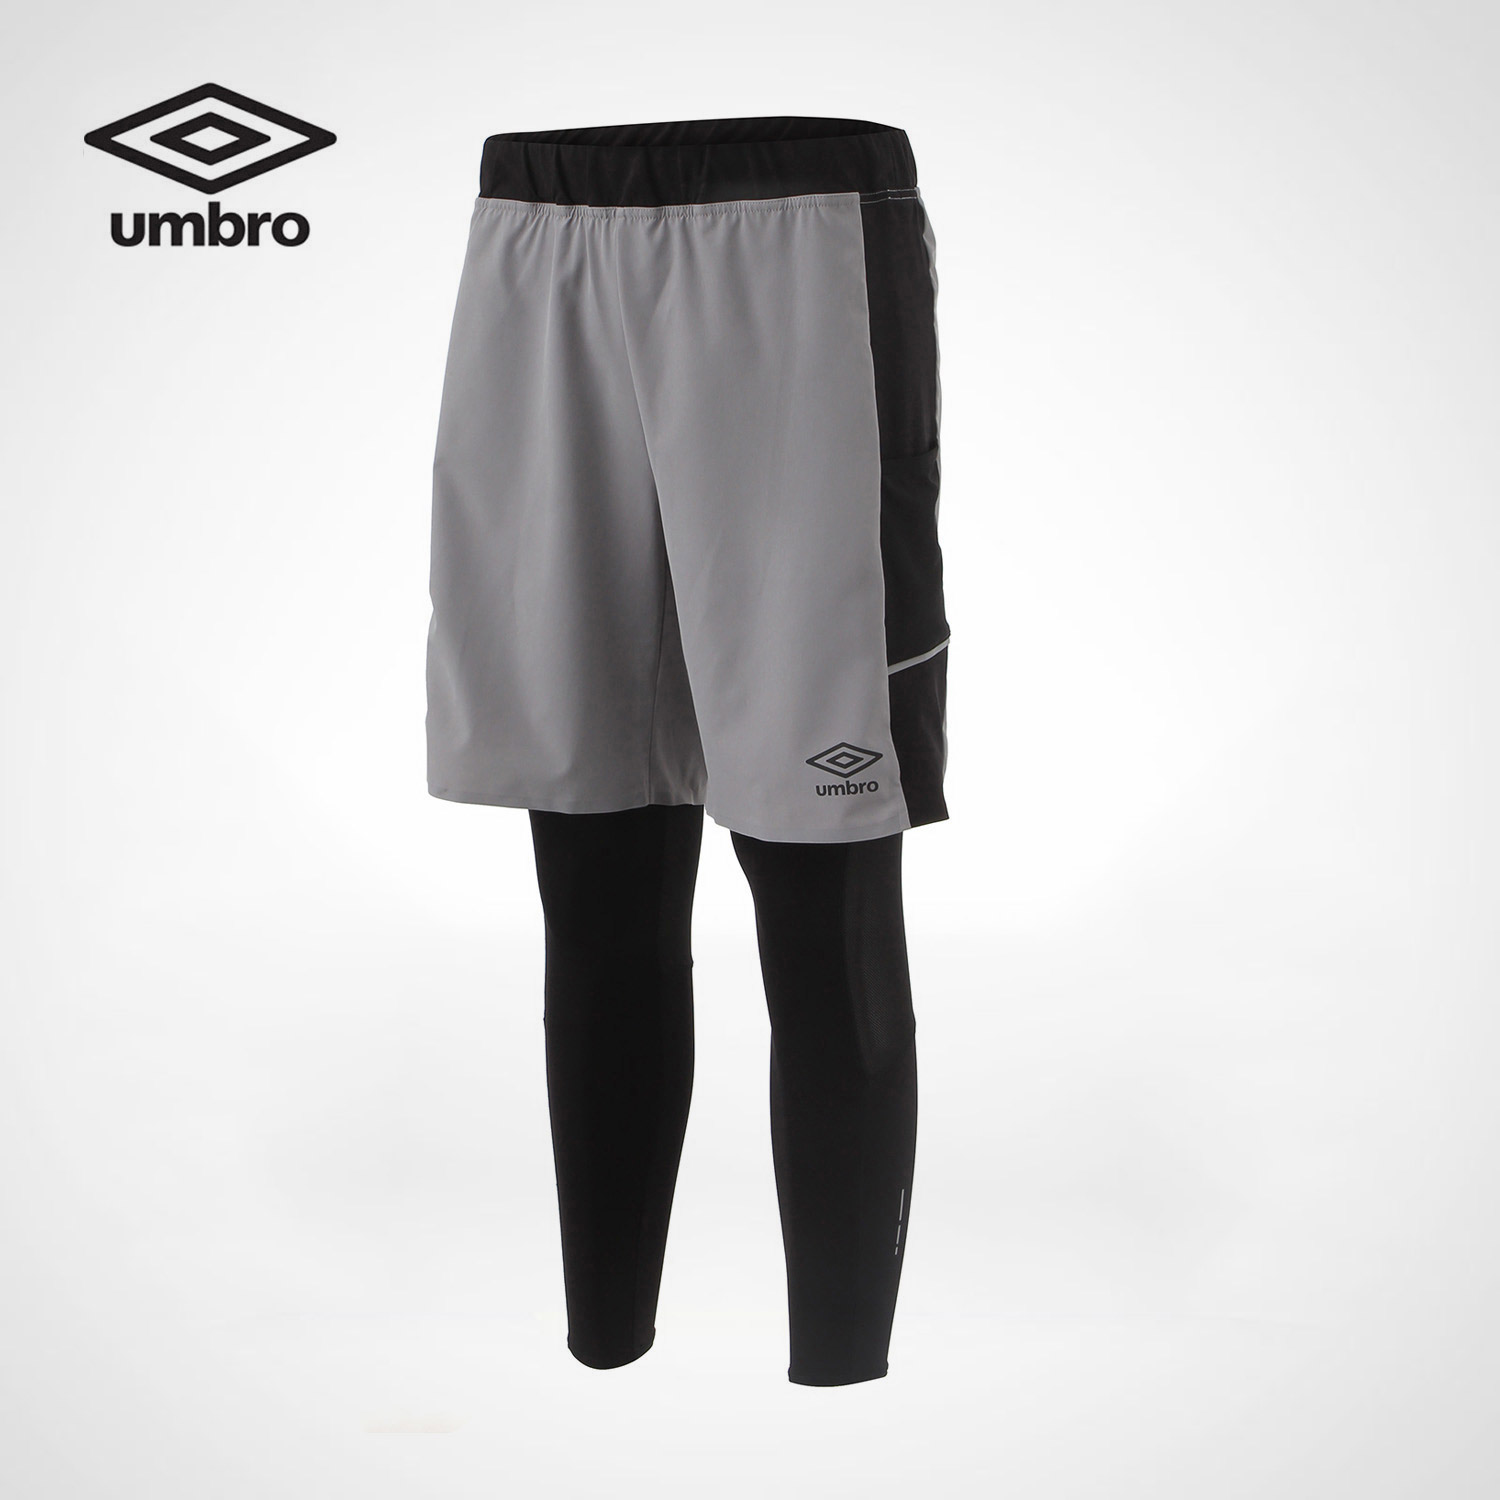 Umbro New Men Comfortable Training Sports Pants Leisure Relaxation Sportswear Long Trousers UCC63735 new 2018 men outdoor running sports pants striped full length leisure sport trousers comfortable breathable sweatpants